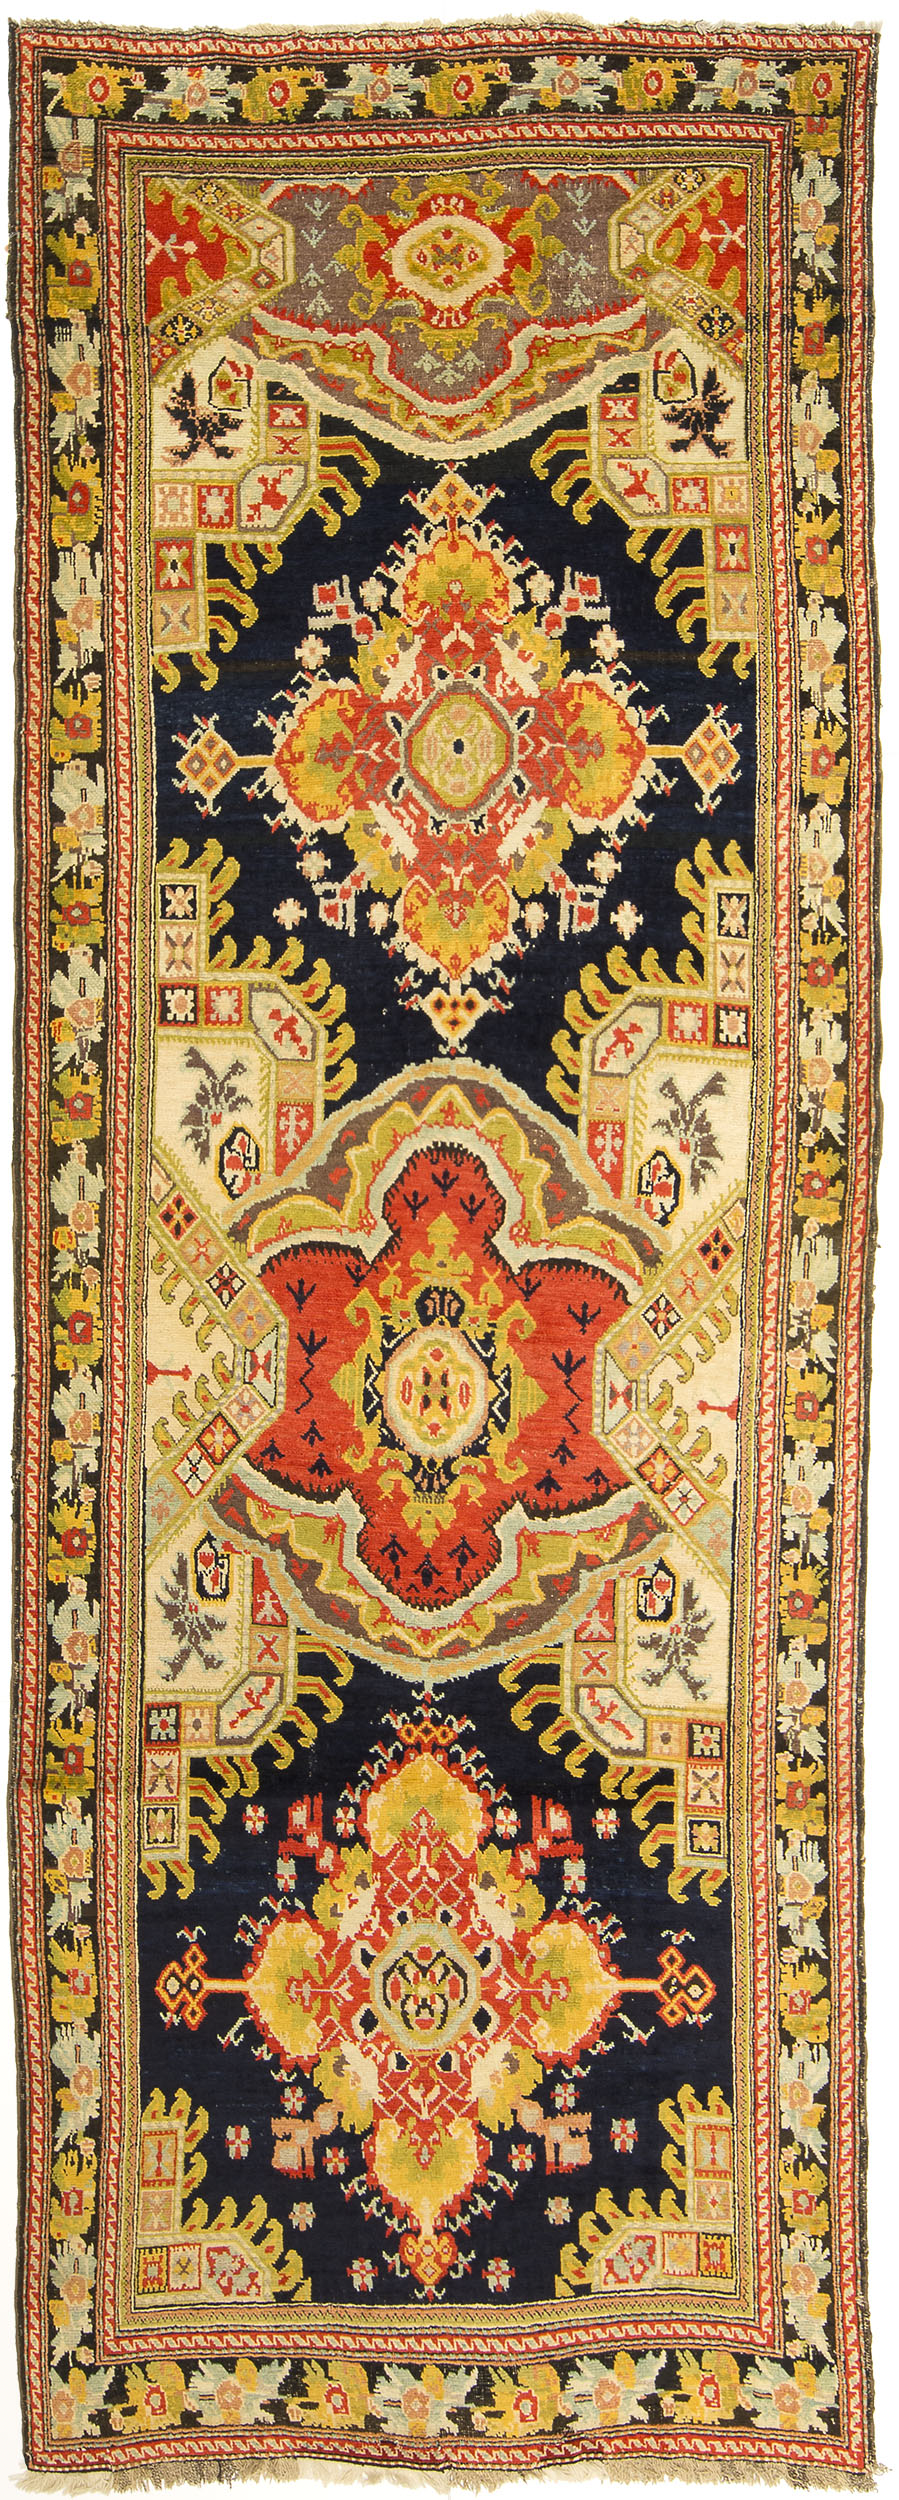 "Karabagh Gallery Carpet 12' 6"" x 4' 5"""